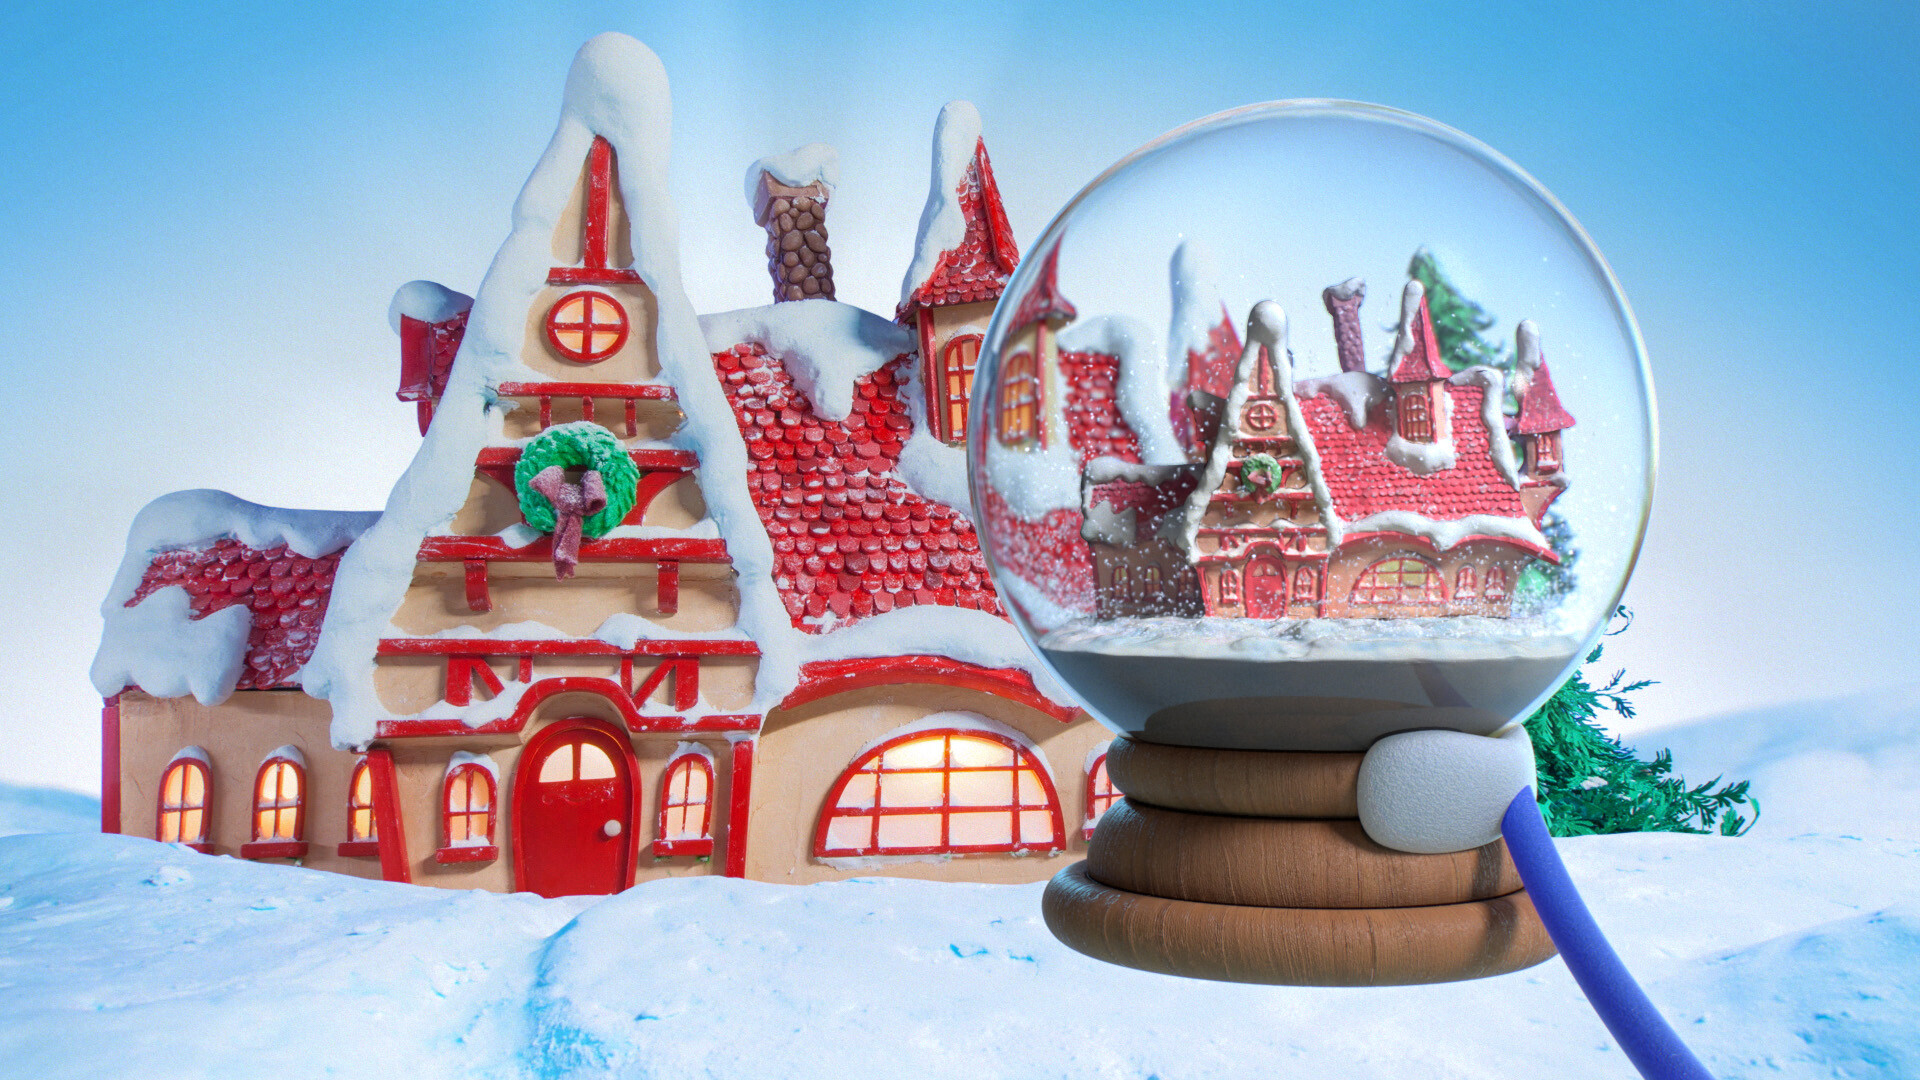 The director wanted a perfect replica of the practical set inside of the snow globe.